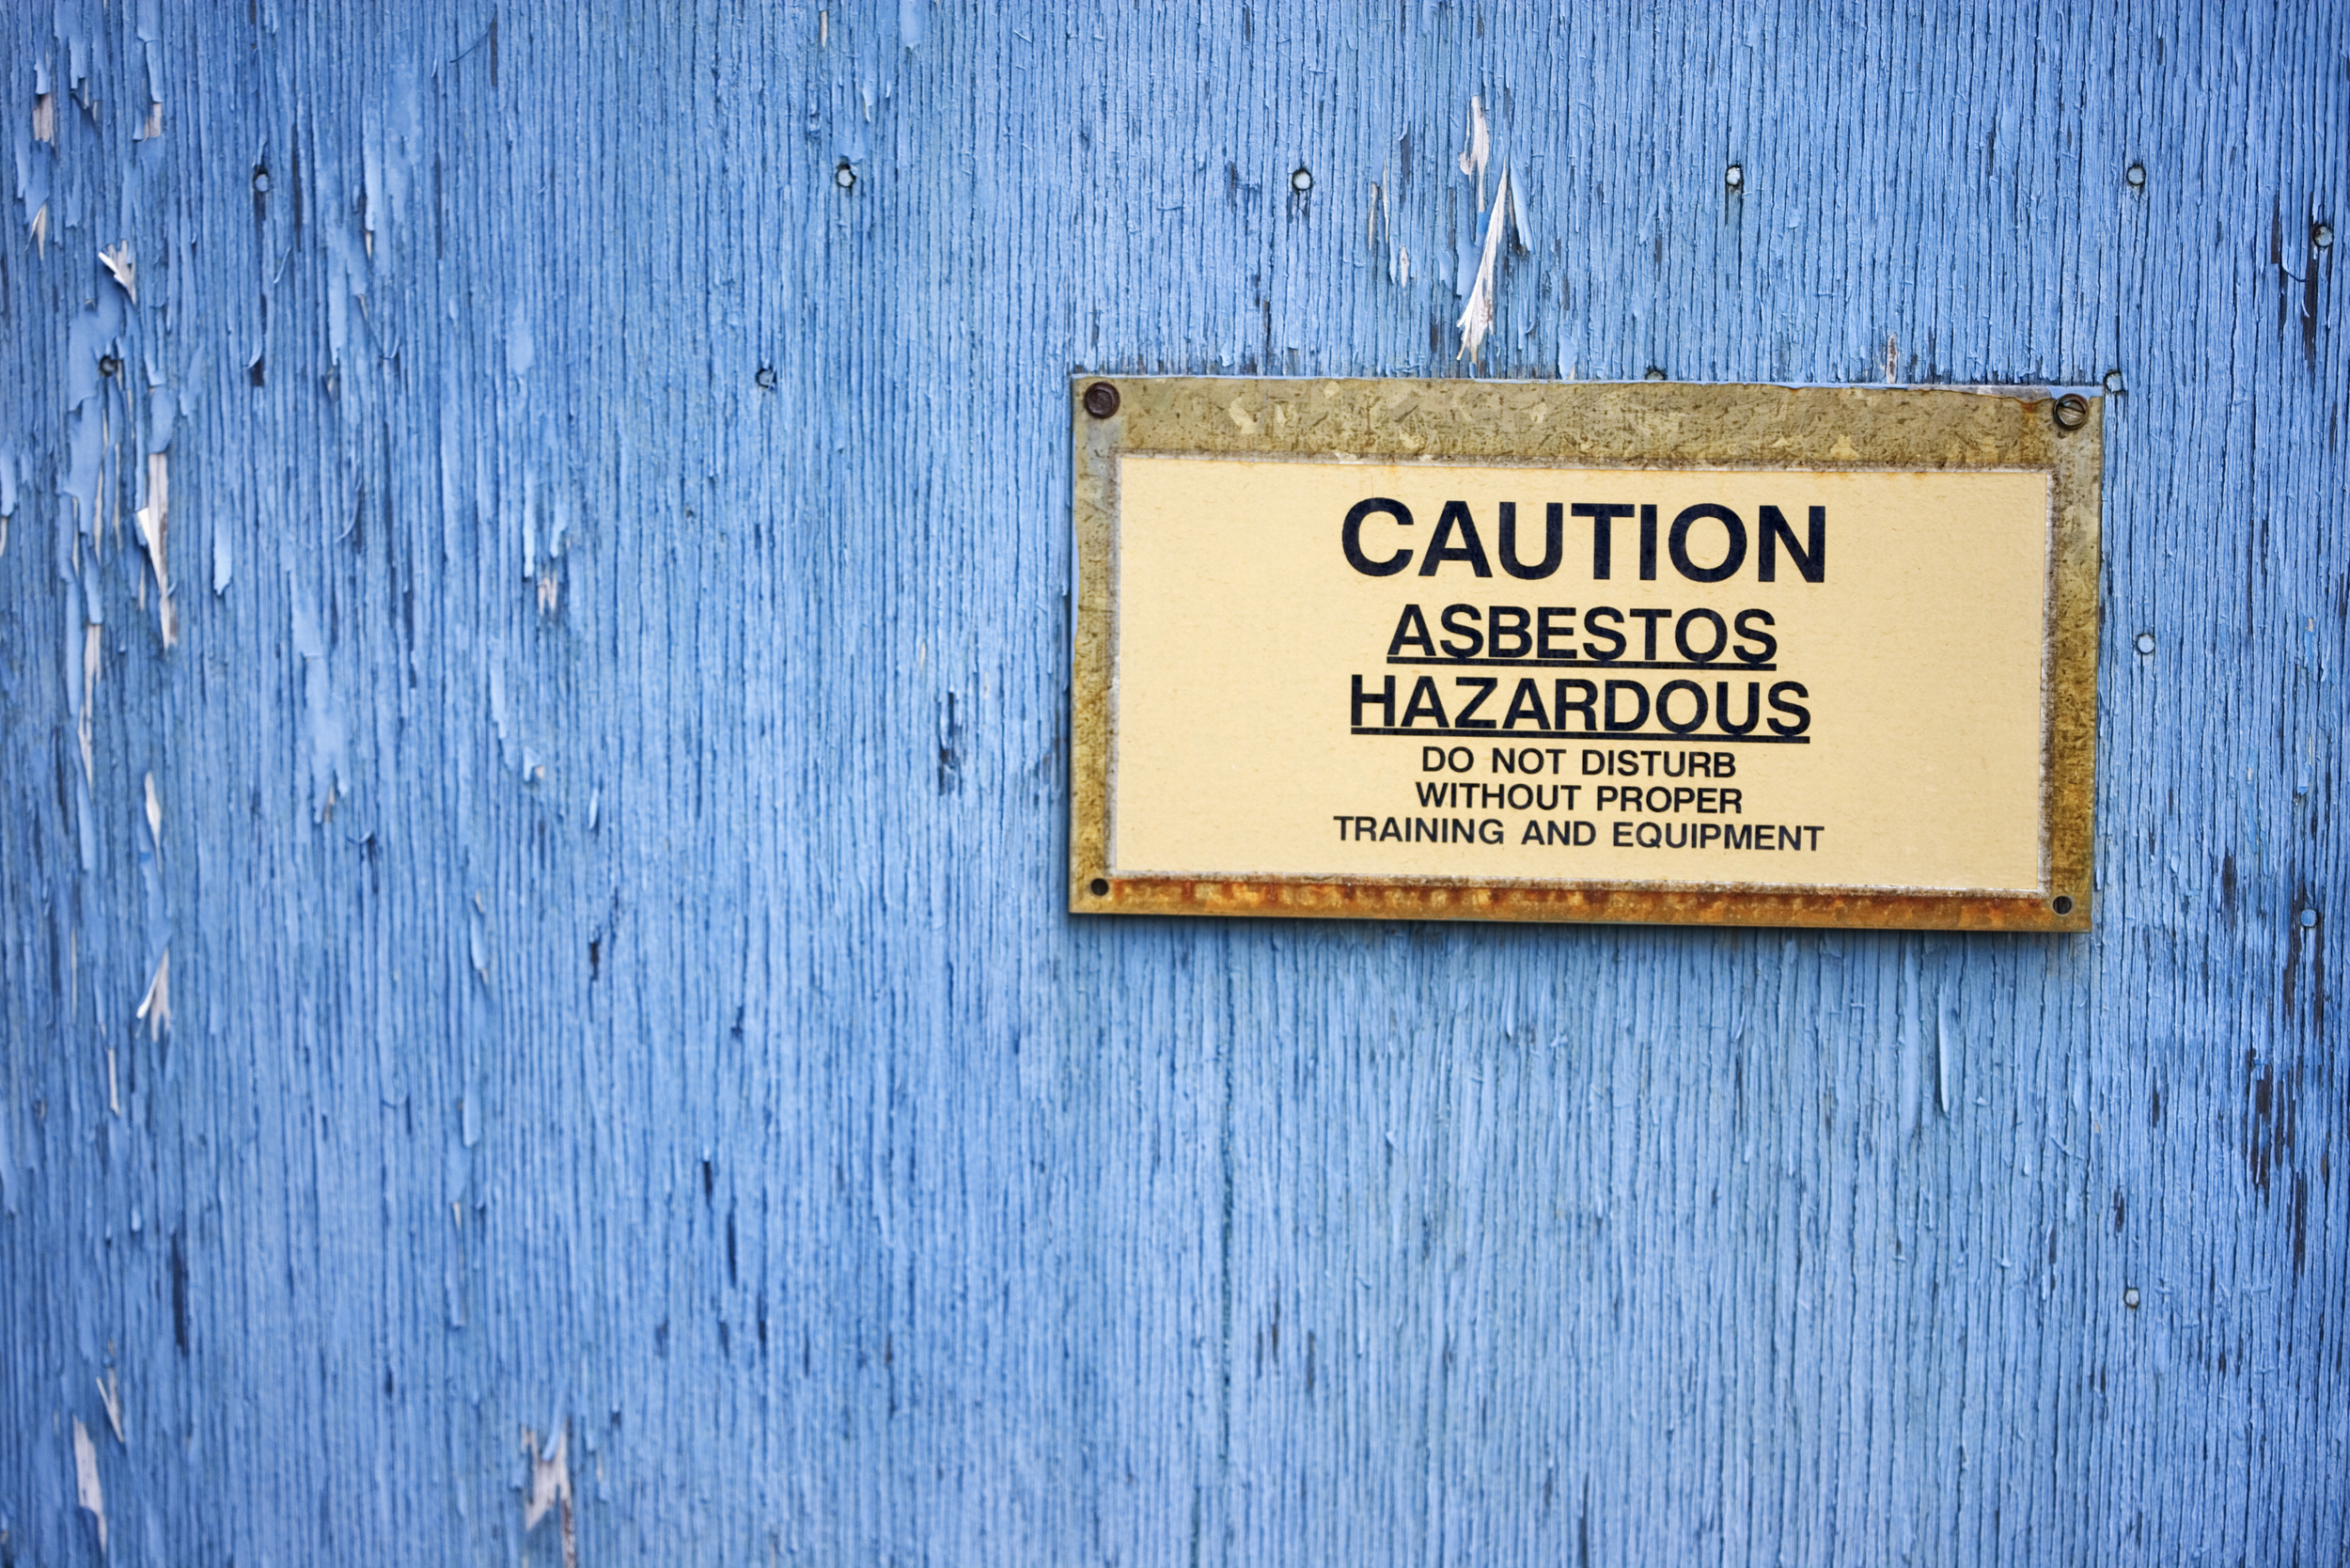 Nearly 100,000 people die every day of an asbestos-related condition.